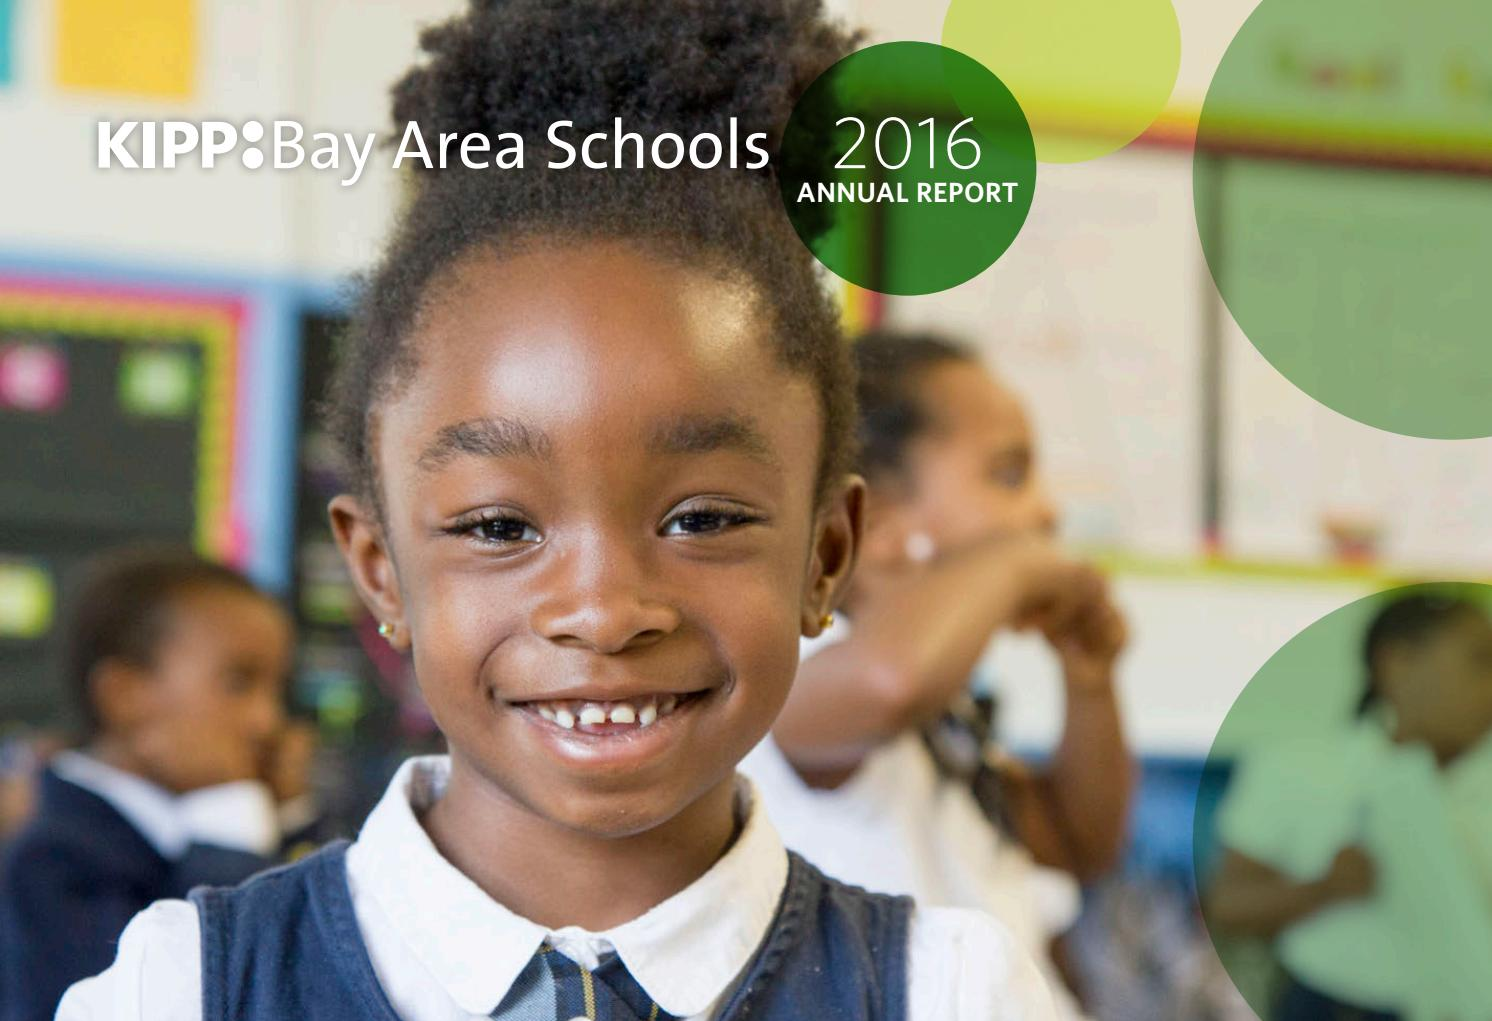 kipp bay area schools annual report by kate rose issuu kipp bay area schools annual report 2016